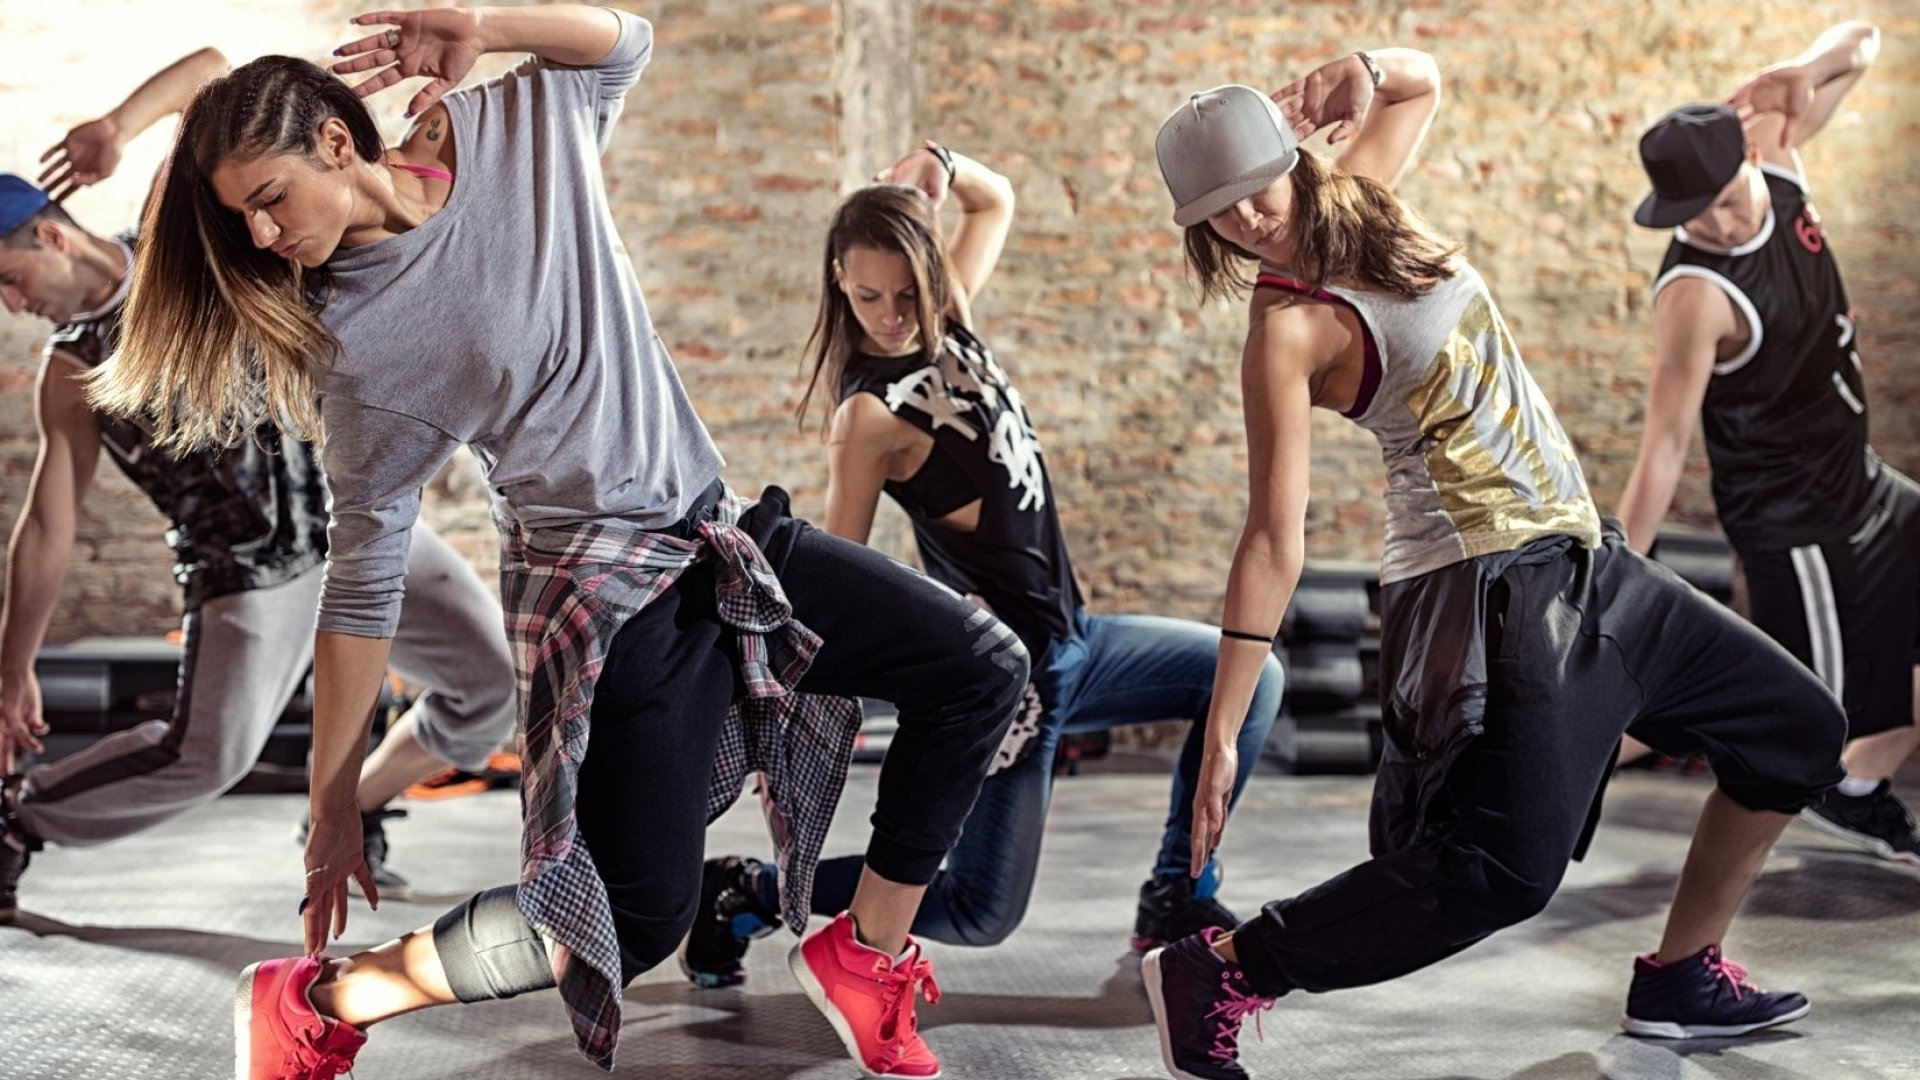 Dancing Benefits Brain Function Teamwork and Health, According to a Neuroscience Ph.D.